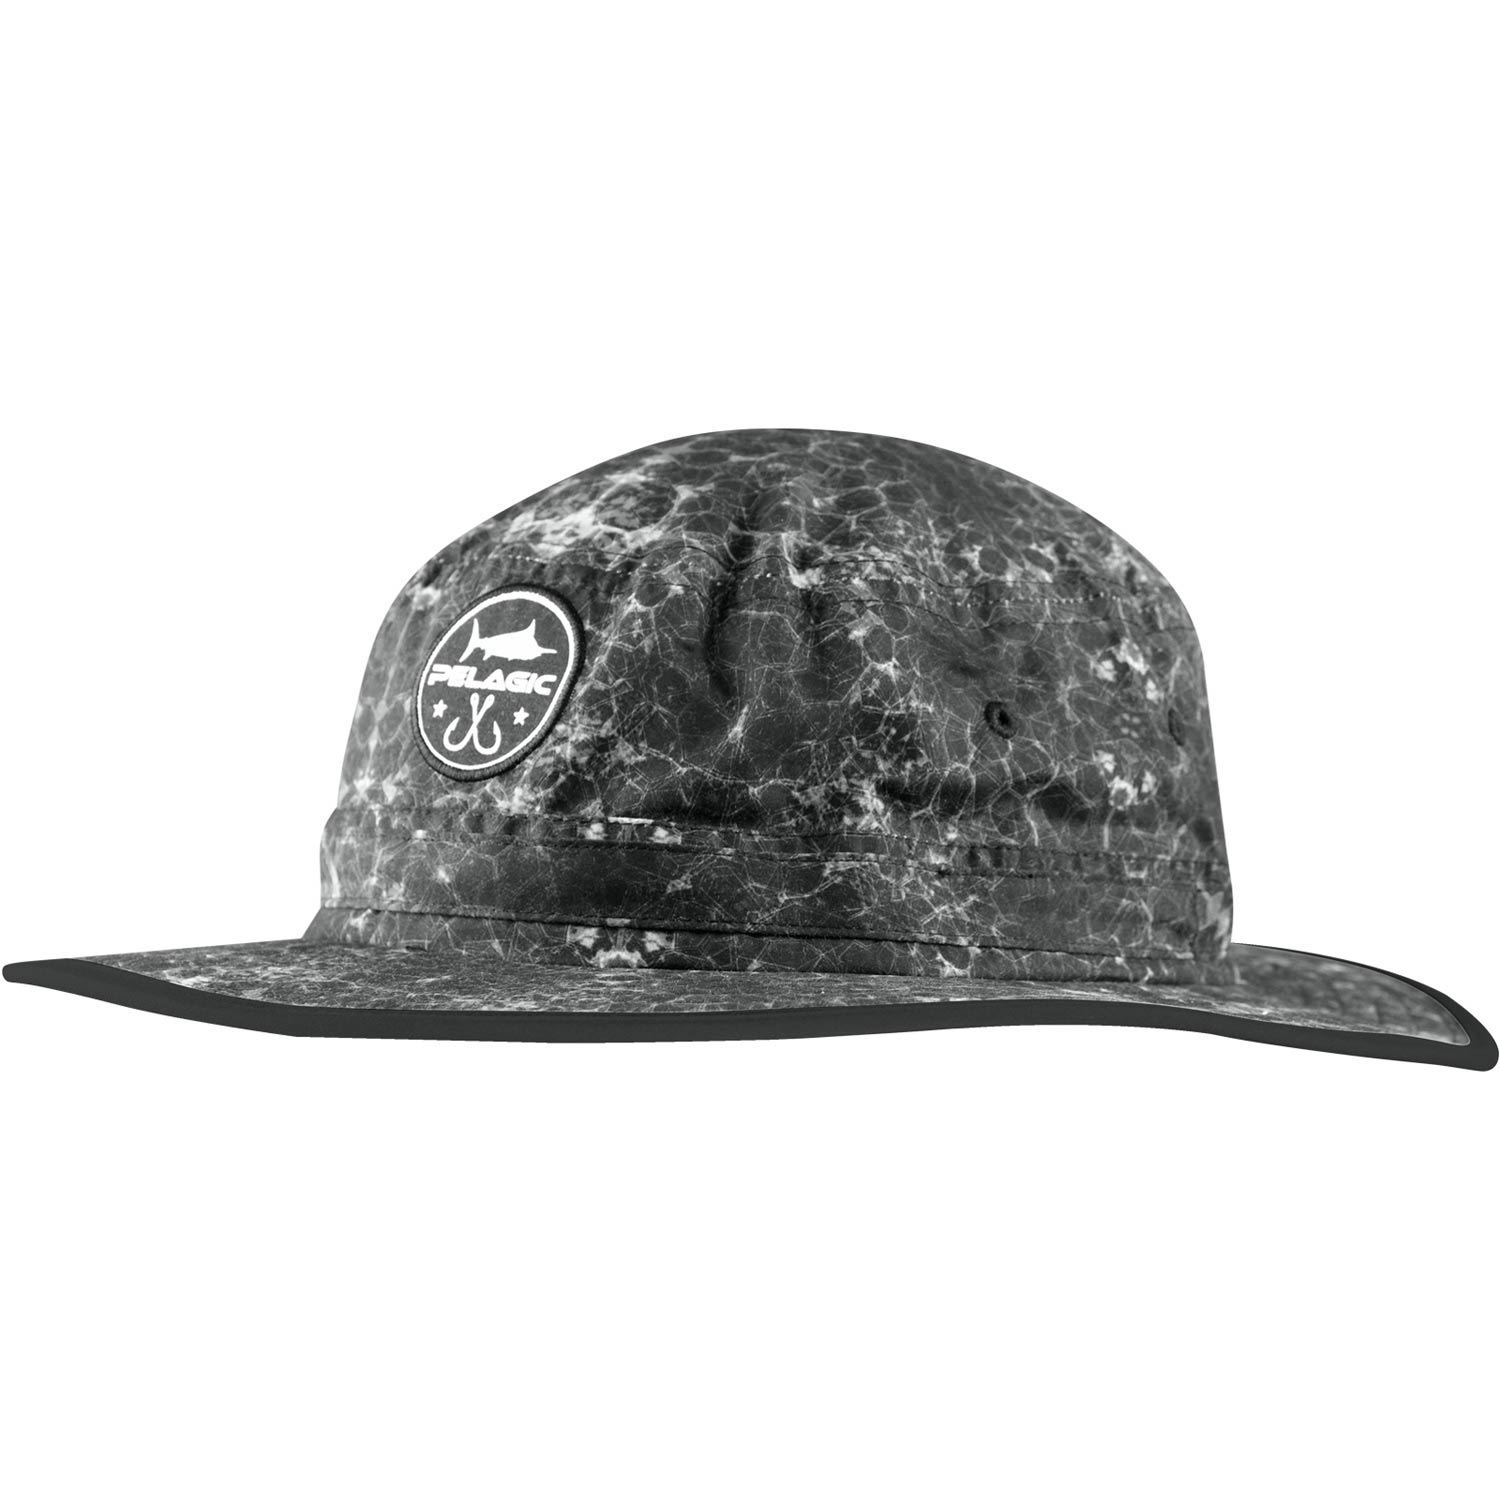 a6755bbd4de PELAGIC Men s Sunsetter Hat